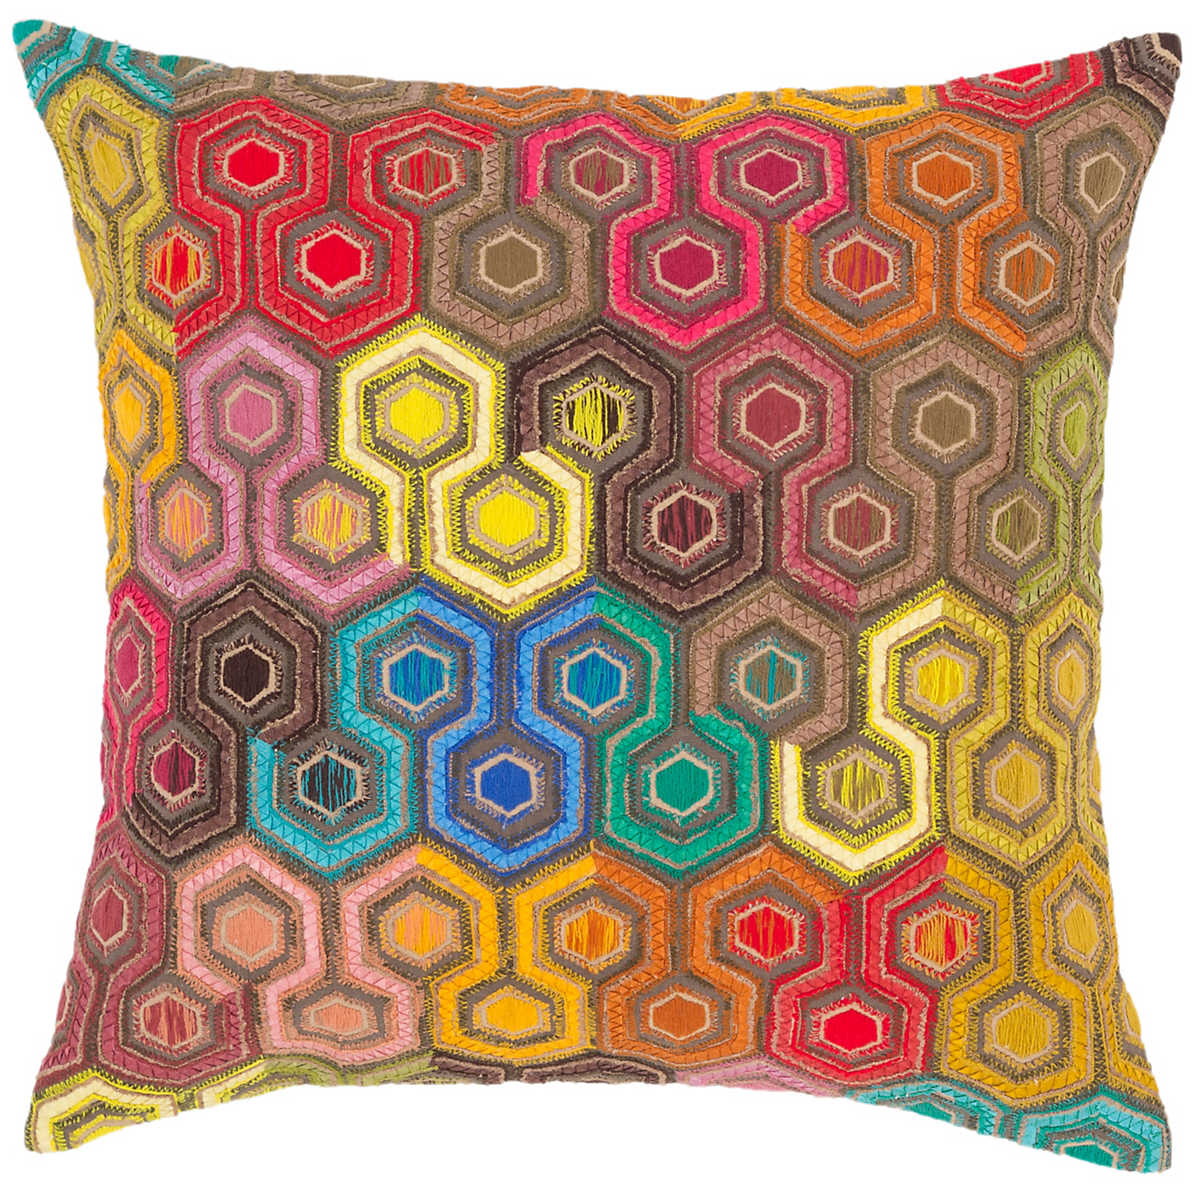 Geodesic Embroidered Decorative Pillow Pine Cone Hill